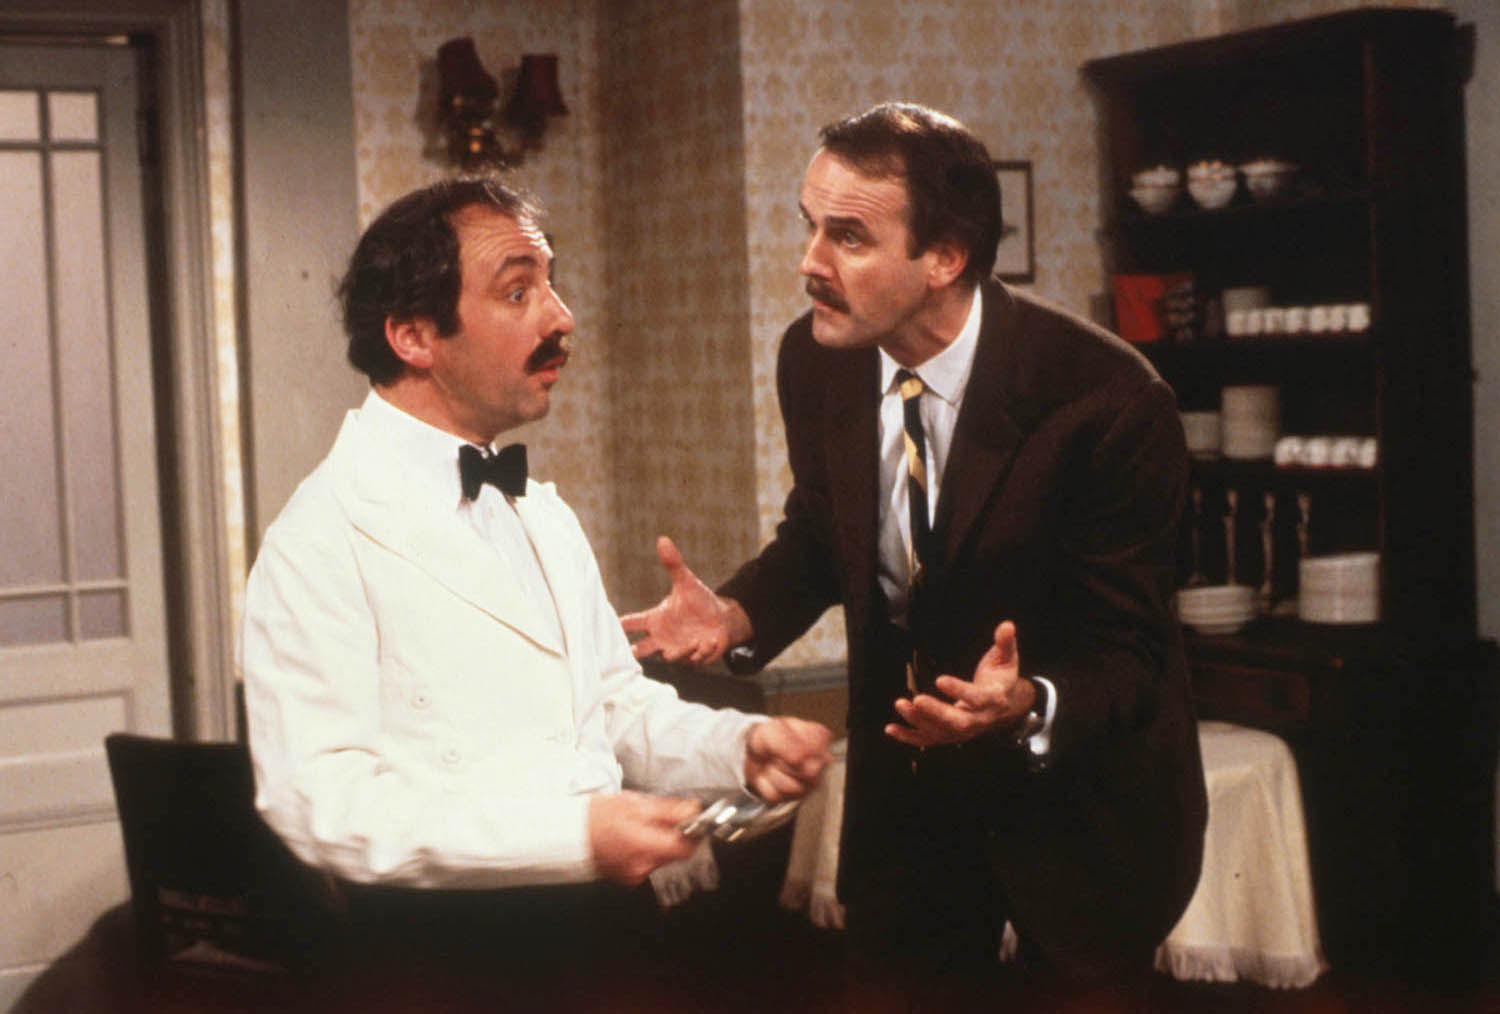 Andrew Sachs as Manuel, left, and John Cleese as Basil in BBC's Fawlty Towers.